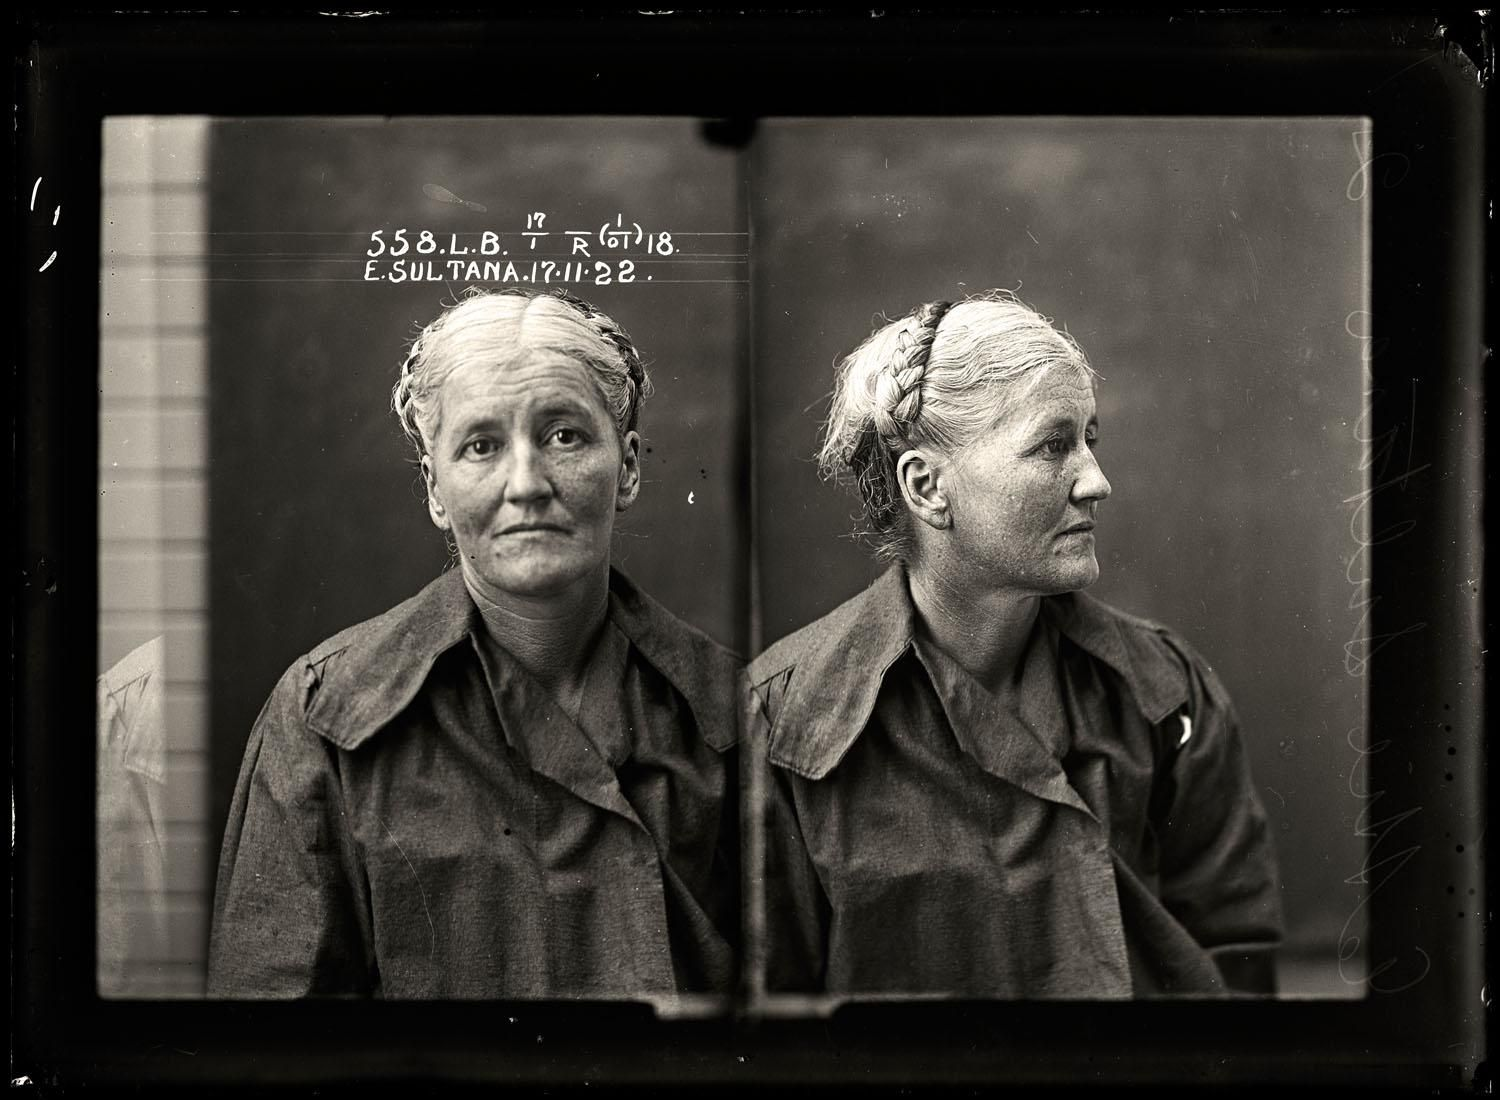 Prostitute Ettie Sultana worked in northern New South Wales and in the Queensland cities of Brisbane and Toowoomba for most of her career. She had multiple convictions for prostitution, theft, drunkenness, swearing and vagrancy. She was sentenced to six months with hard labour.